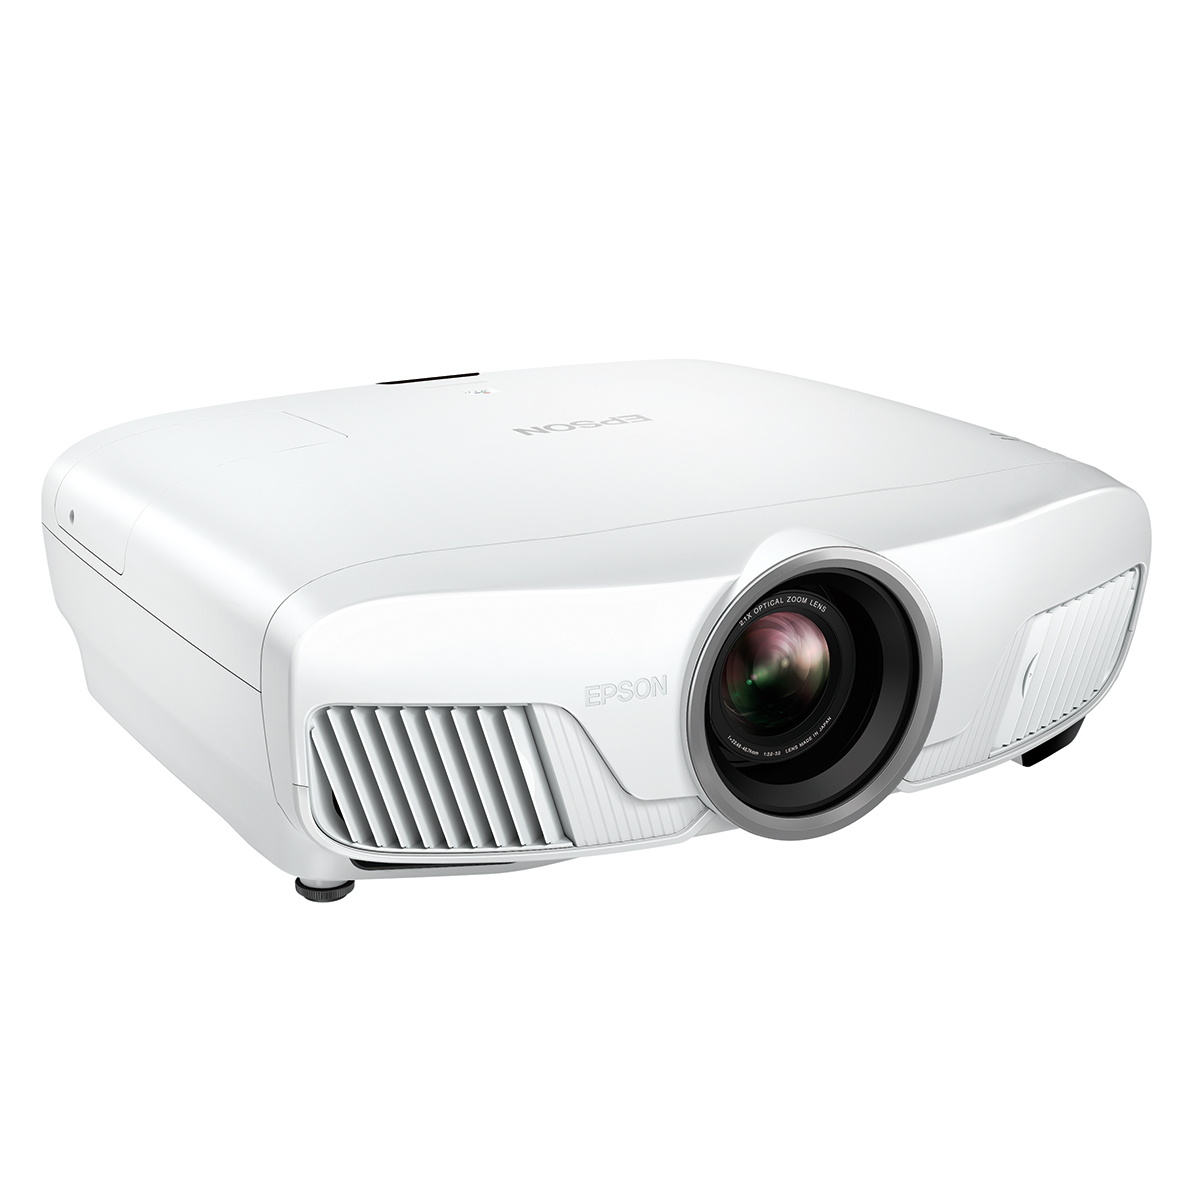 Epson EH-TW7300 3LCD Home Cinema Projector